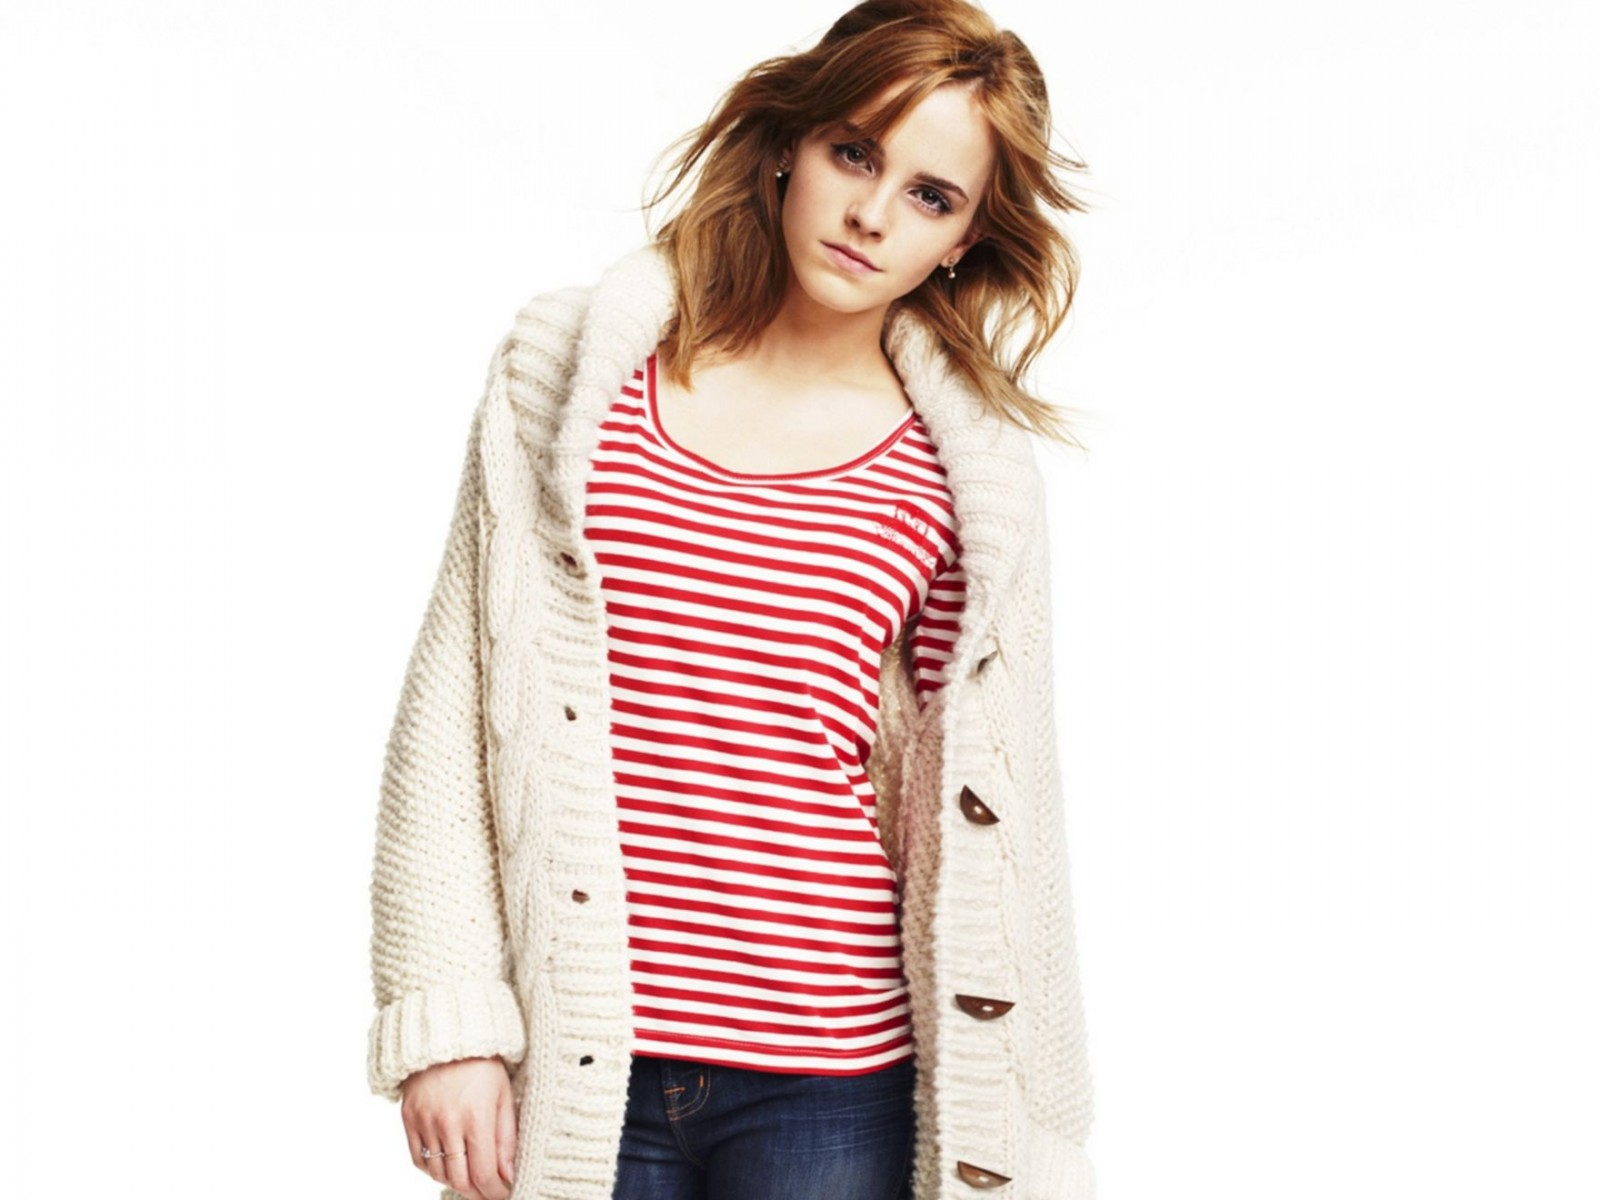 Emma Watson 270 Normal Wallpaper